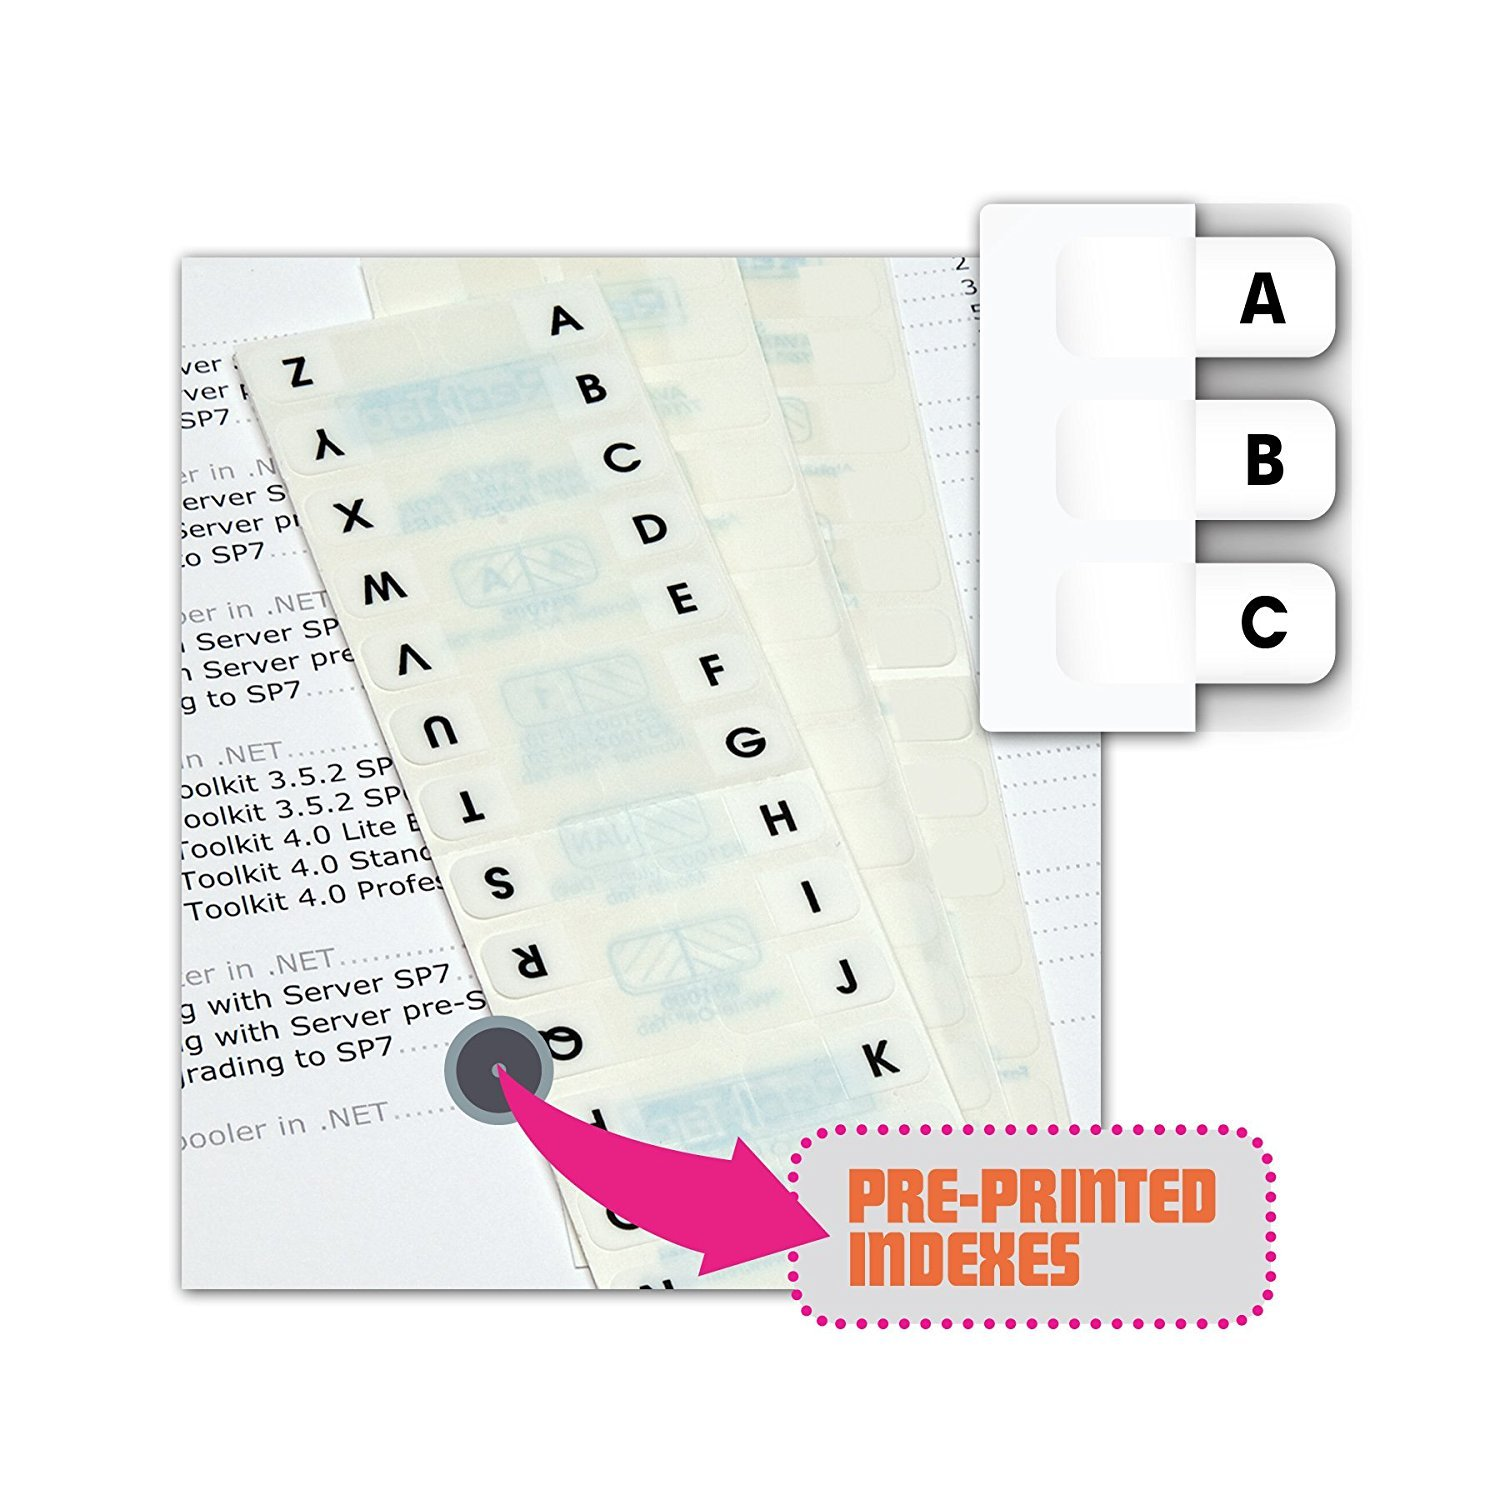 Redi-Tag Pre-Printed Index Tabs, A to Z, Permanent Adhesive, 7/16 x 1 Inches, 104 Tabs per Pack, White with Black Print (31005) 3-Pack